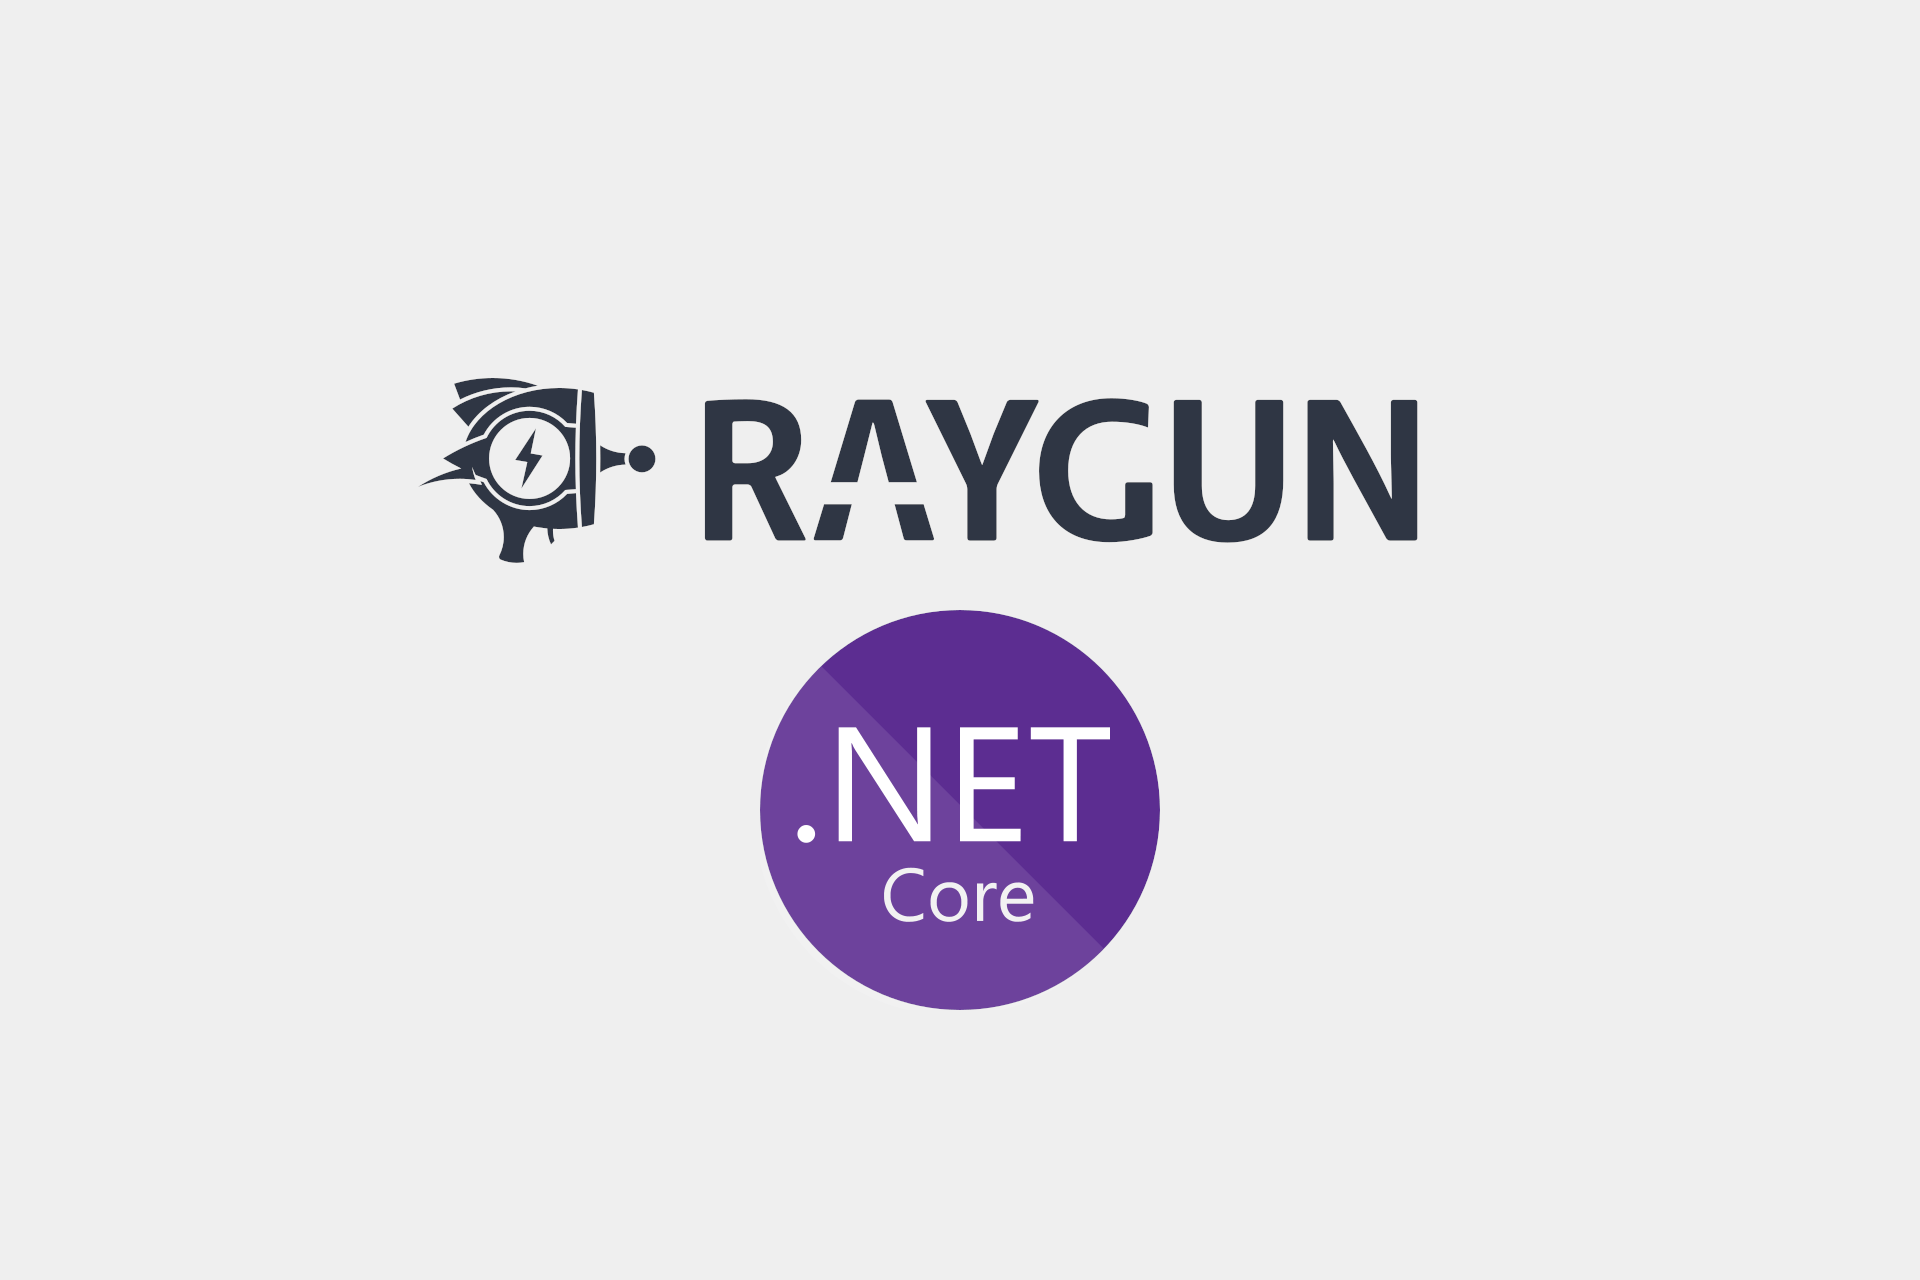 Exploring Raygun's new application performance monitoring tool for .NET Core